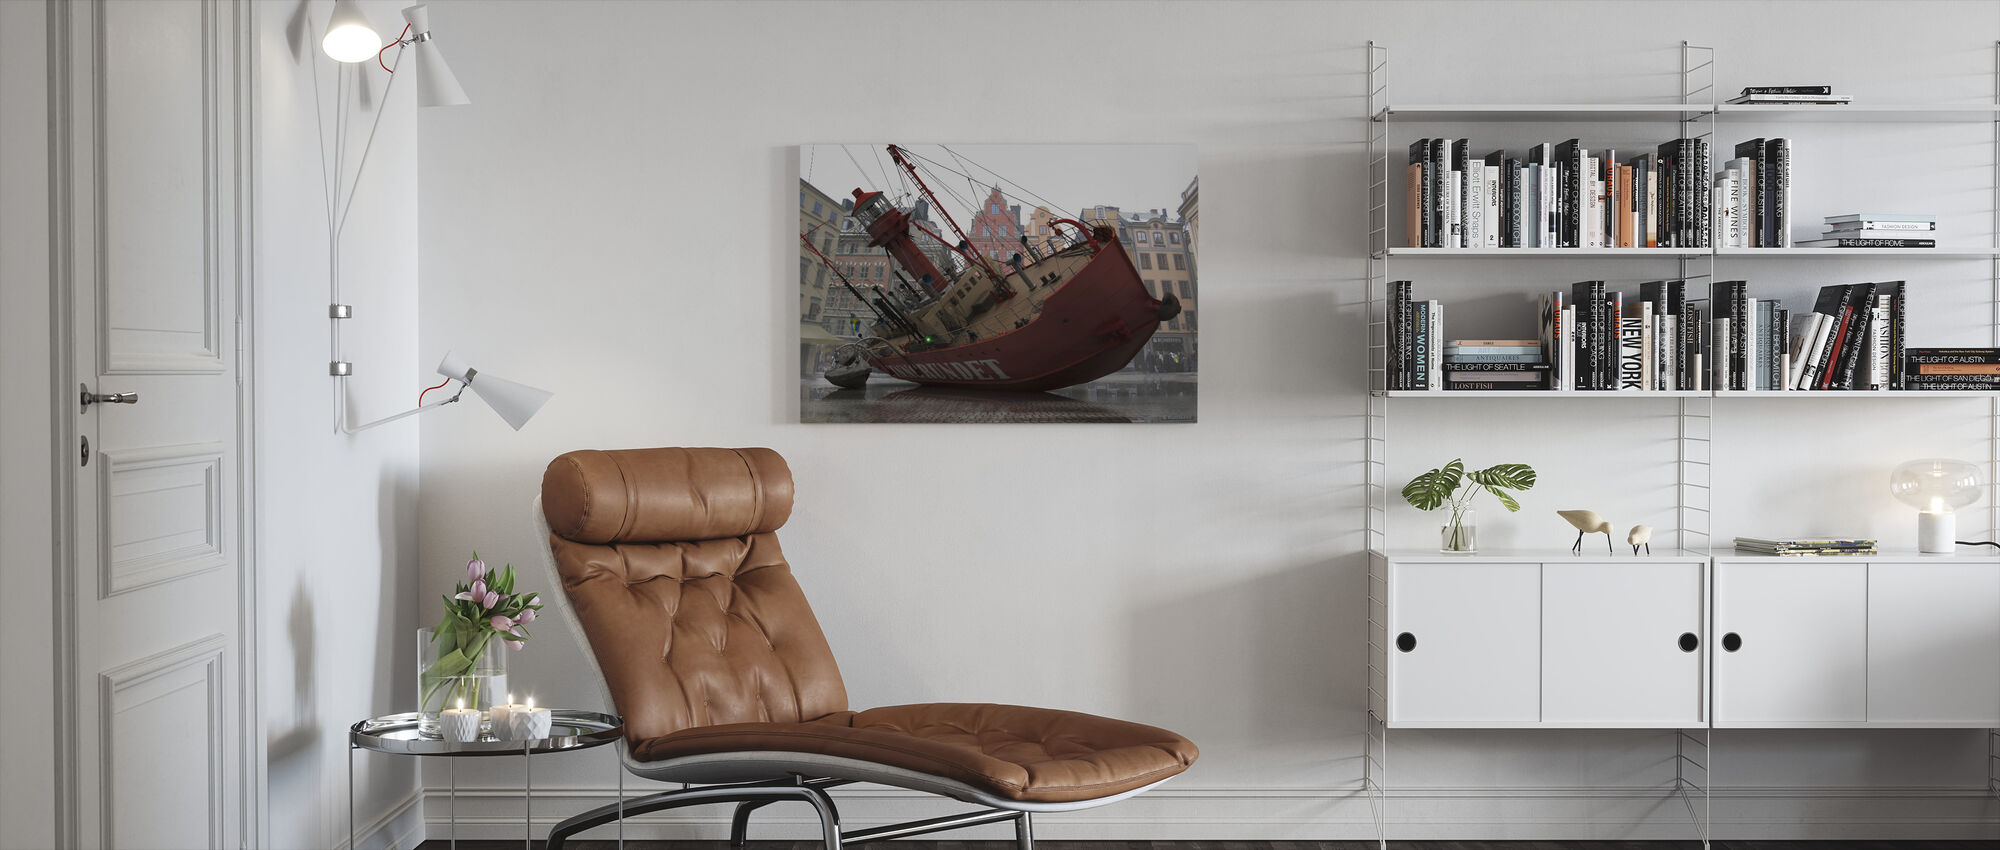 Boat in Old Town - Canvas print - Living Room